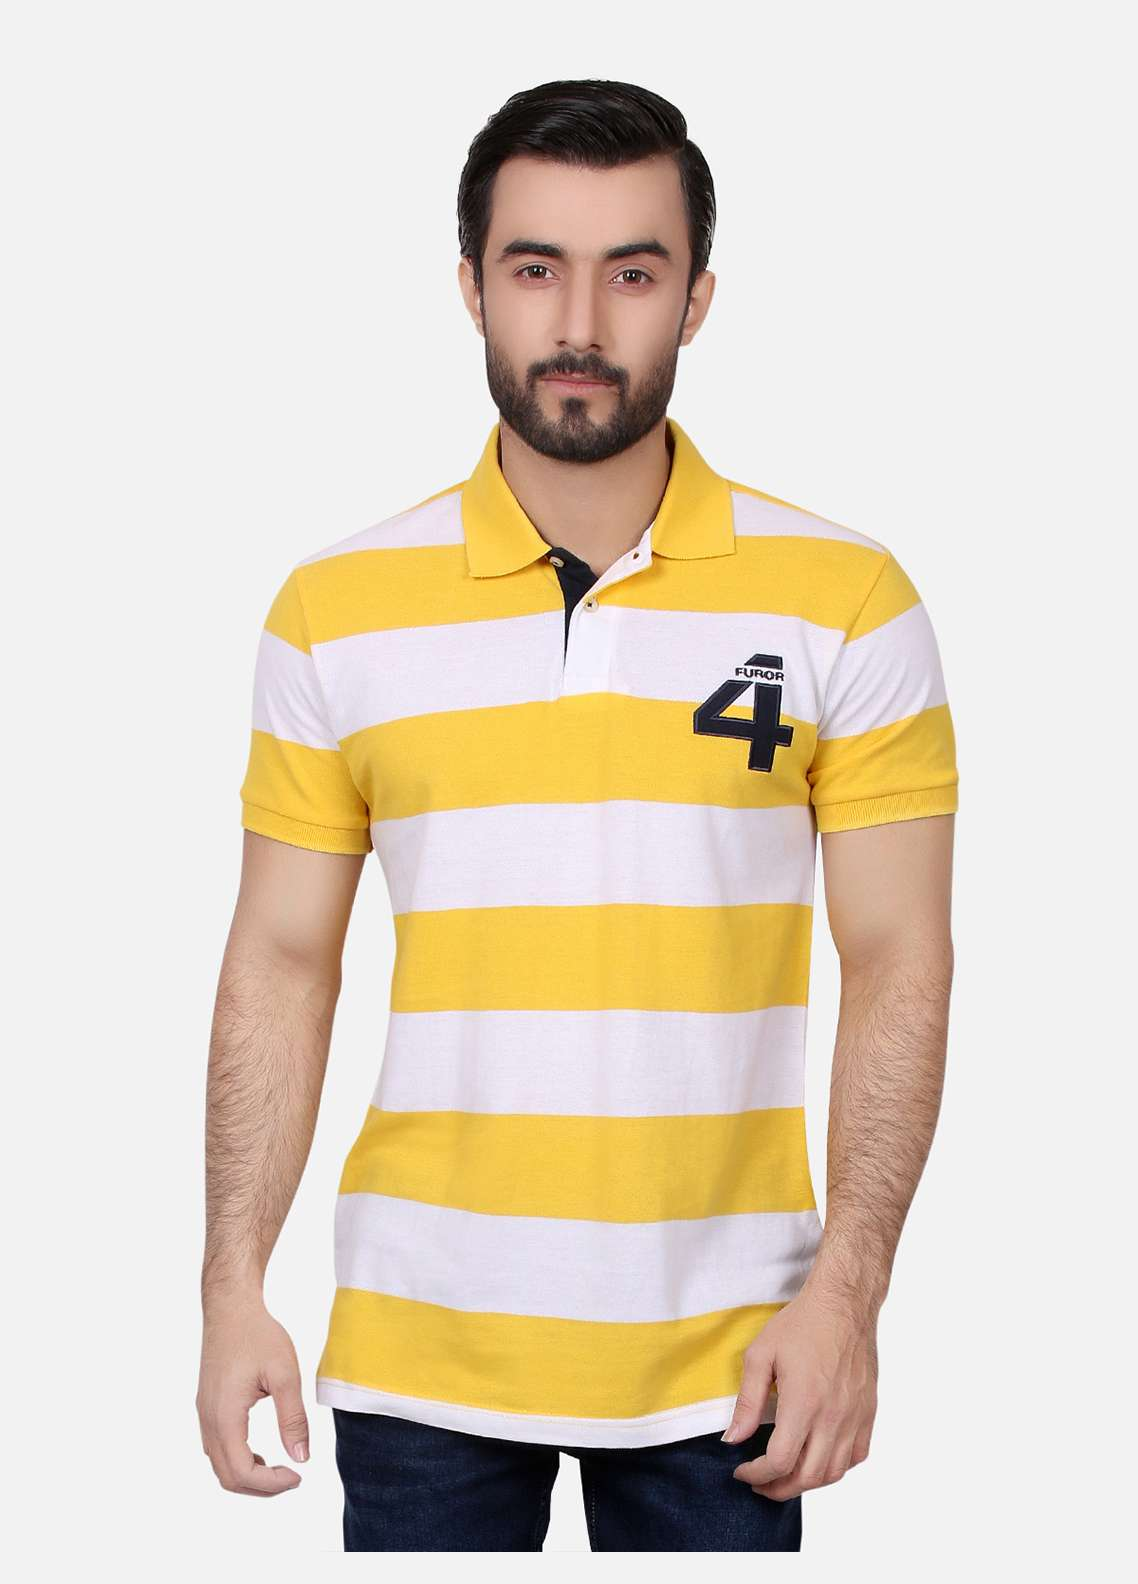 Furor Cotton Polo Men T-Shirts - Yellow FRM18PS 025